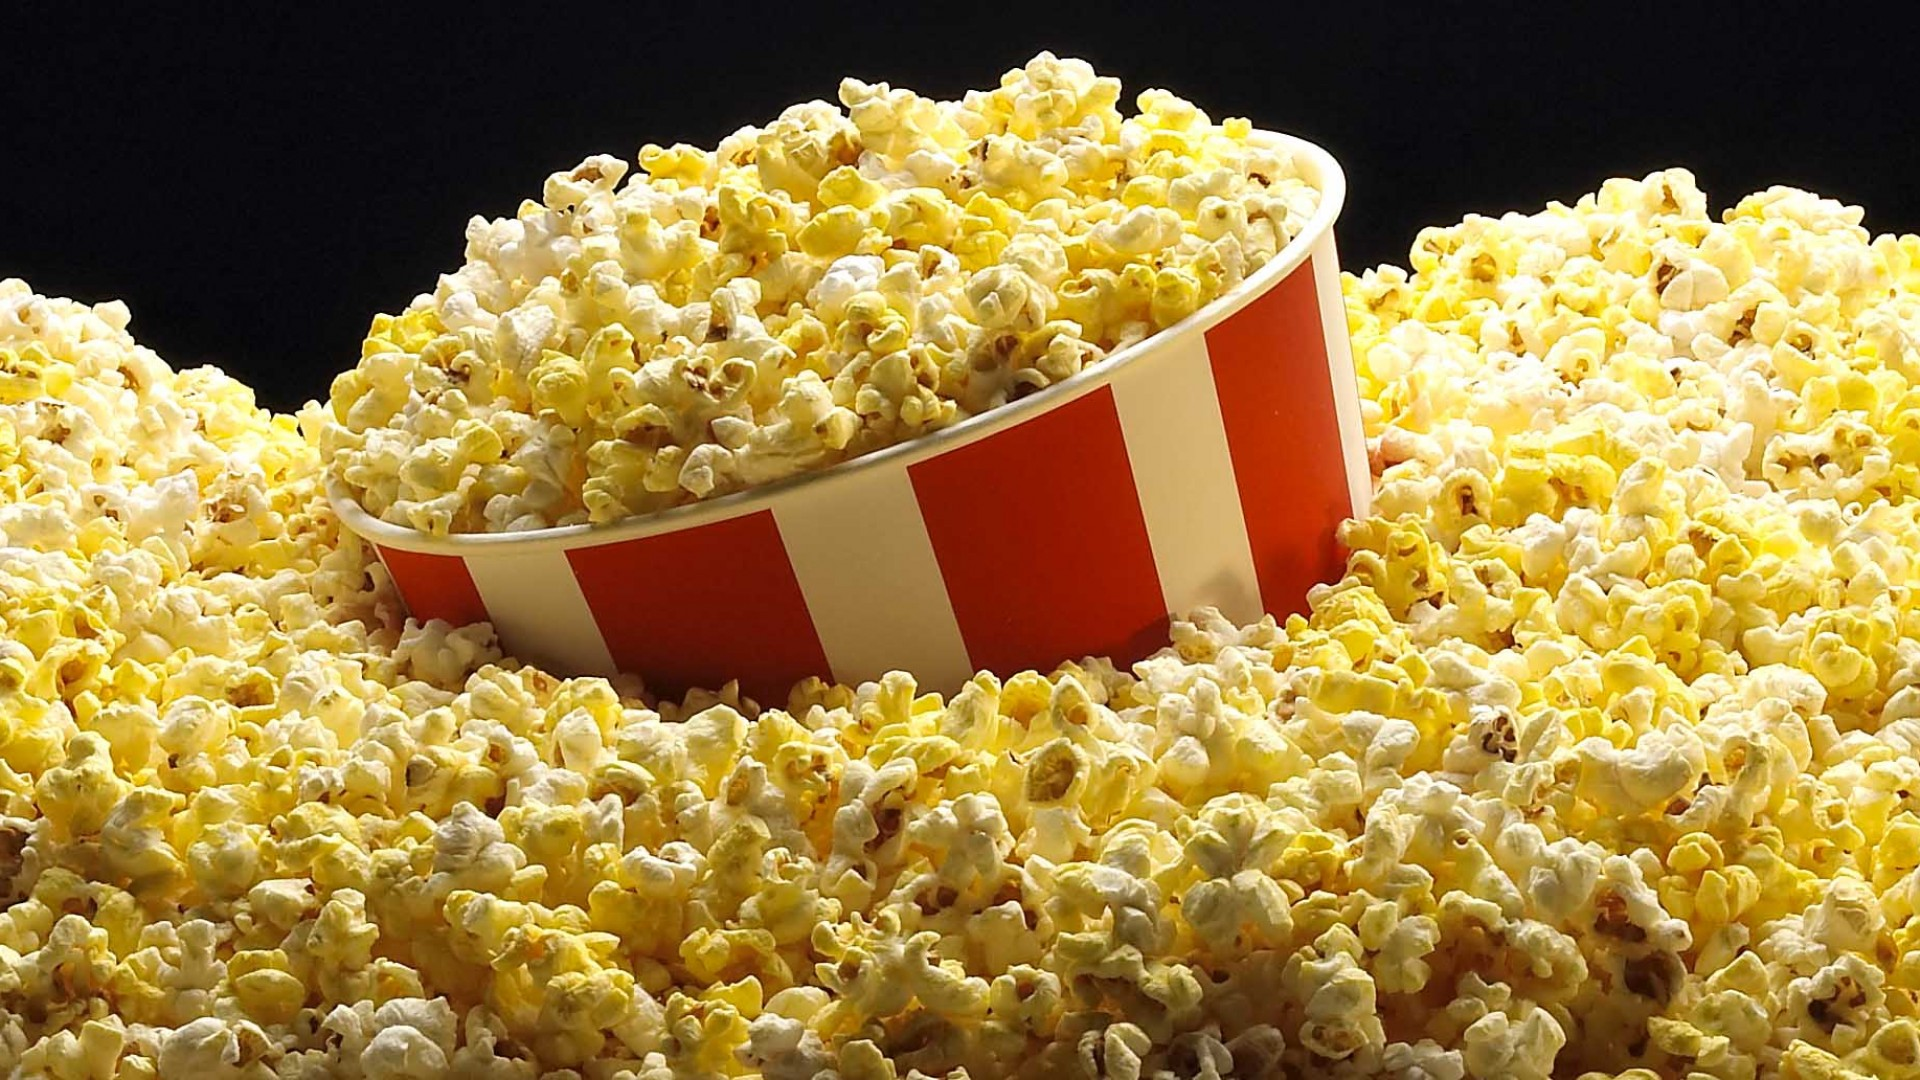 Popcorn: Various Types of Popcorn Suppliers and Machine